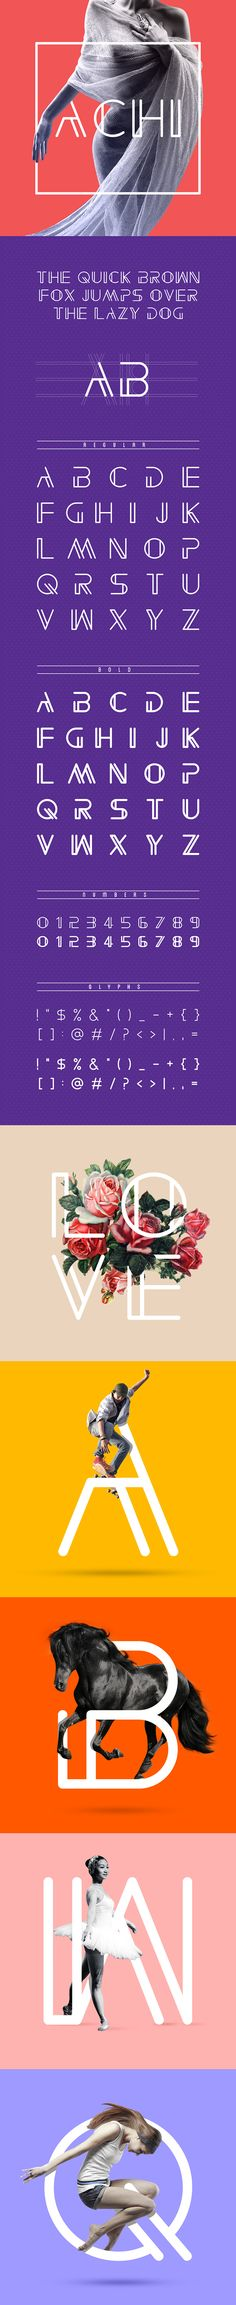 ACHI FONT on Behance